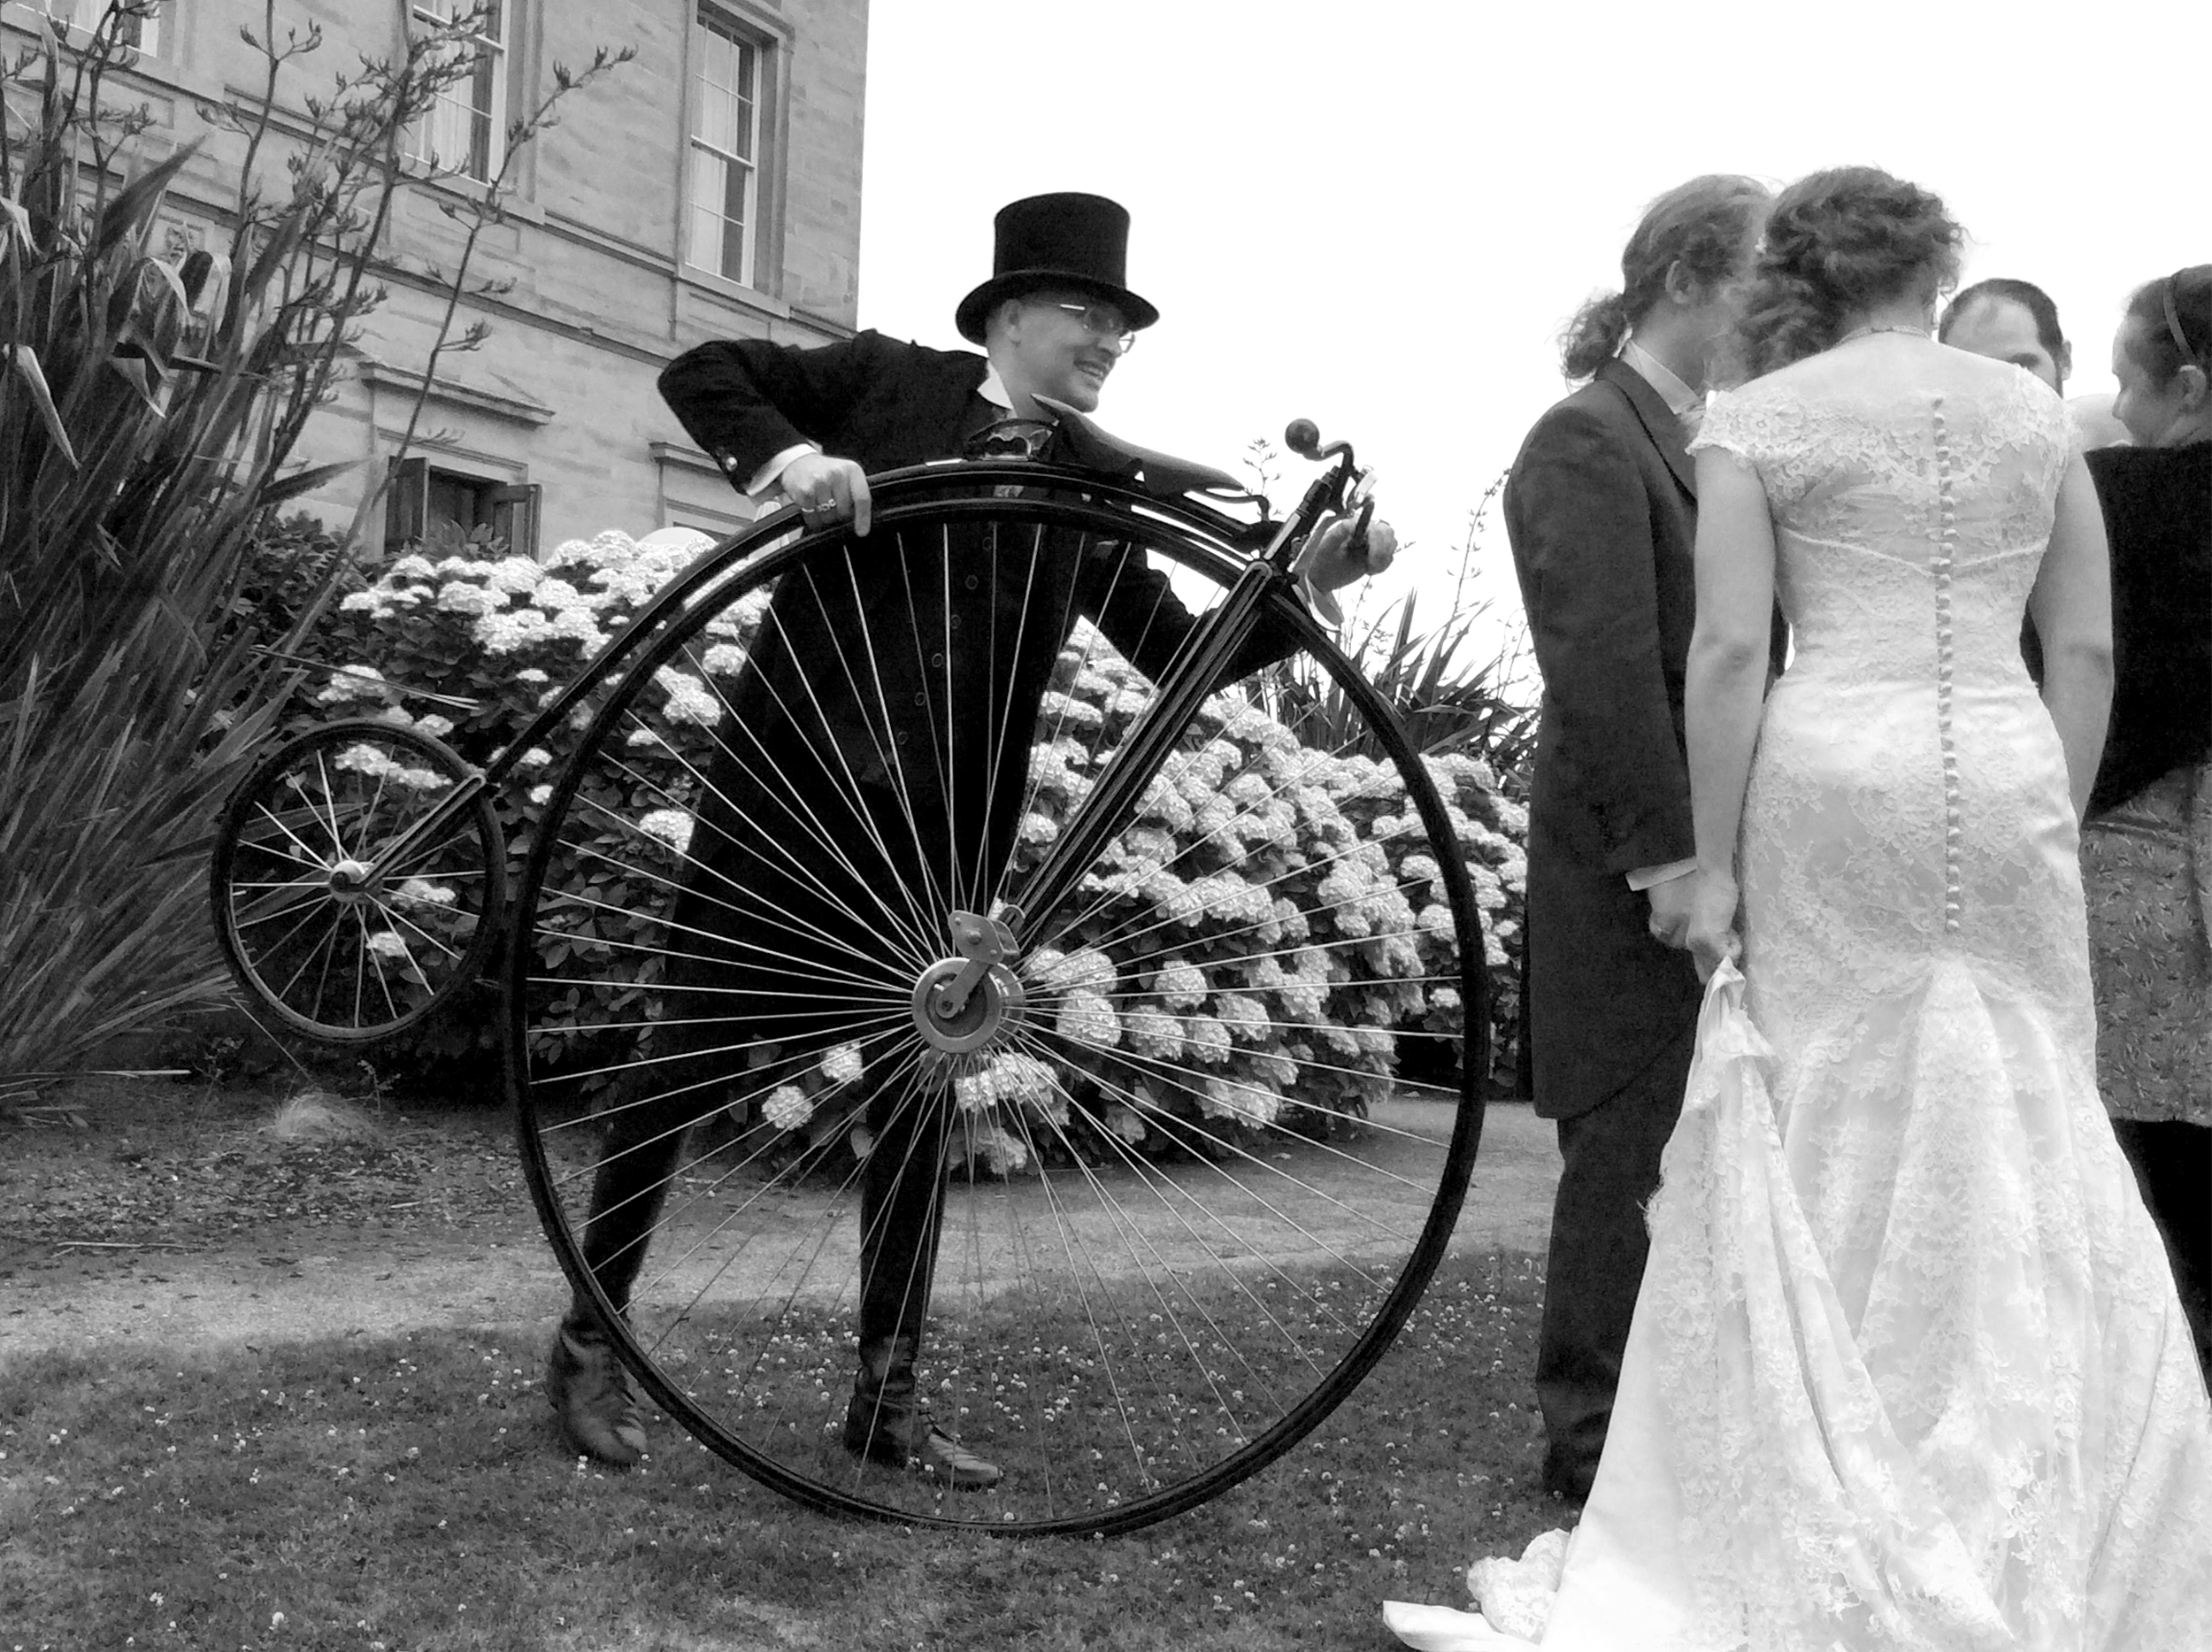 INSPIREDTO KNOW MORE? - If you think that you may may like to Victorian History come to life at your special day with the Iconic Machine that we all know and love as the Penny Farthing!Make the Victorian pleasure pastime arrive at your Wedding and give the day an extra Wow Factor!Please get in touch with our team.